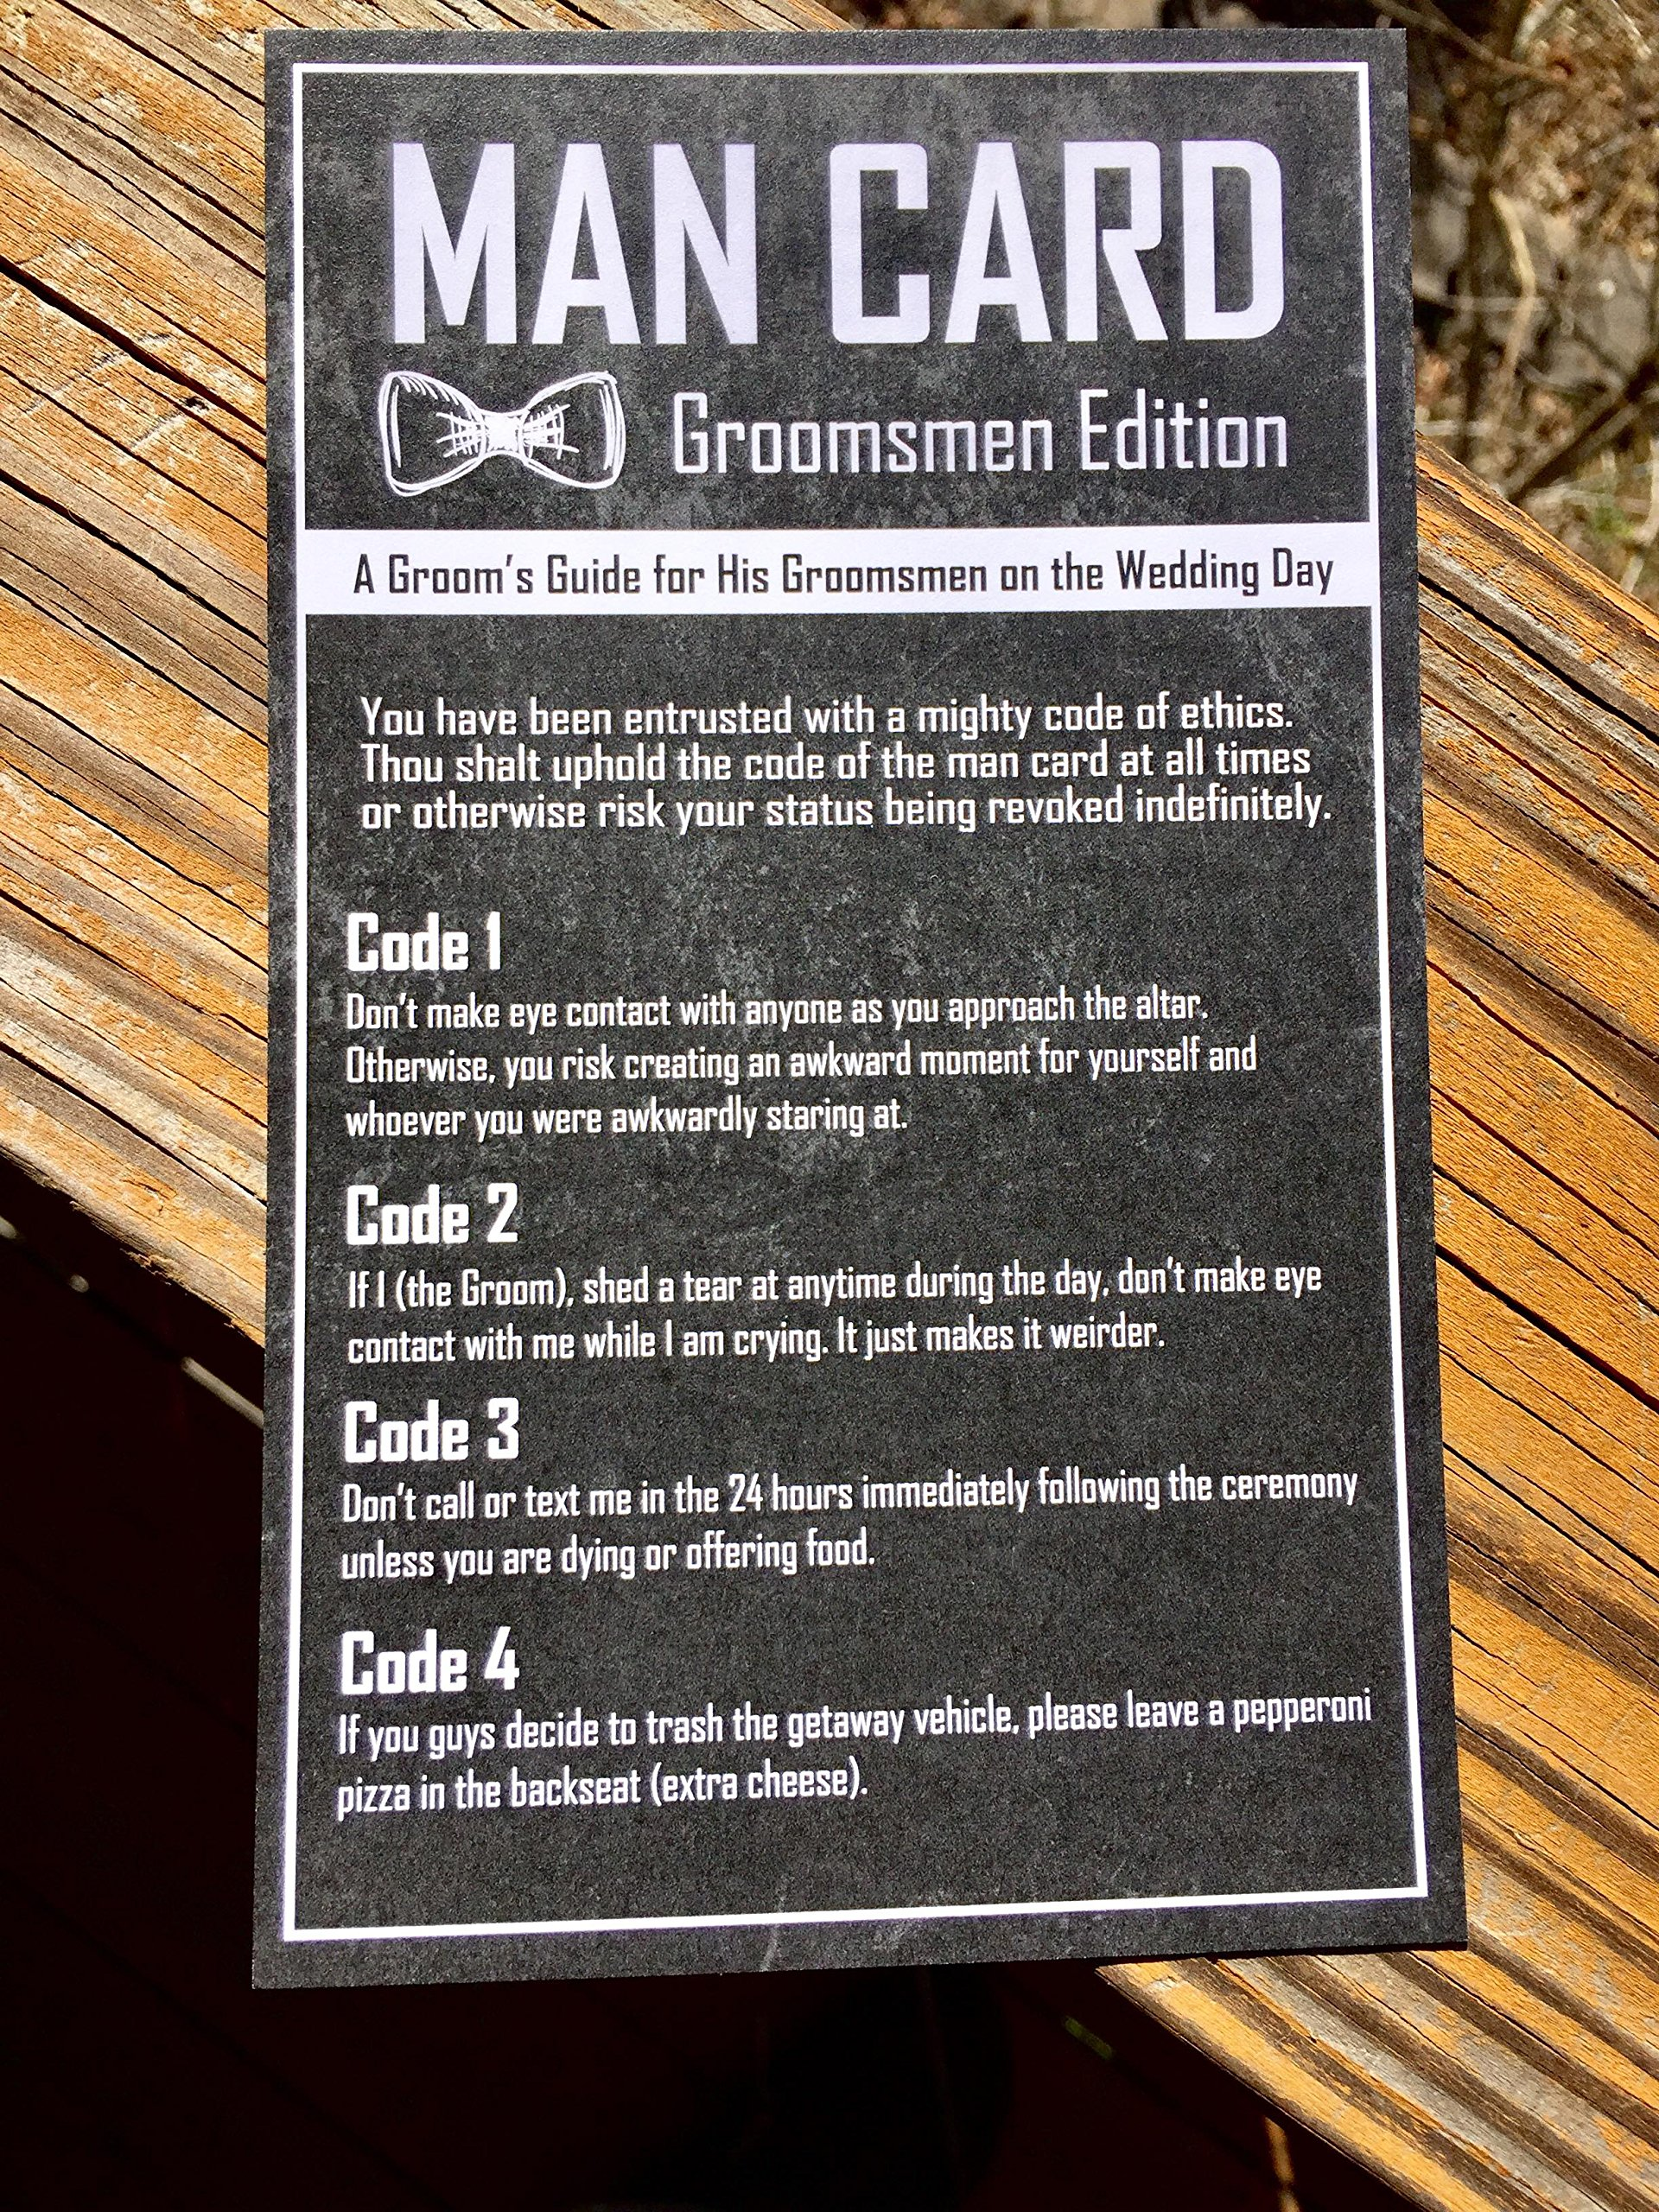 Groomsmen Gifts For Wedding - The Man Card - Groomsmen Edition 6-Pack by Wannabe Genius (Image #5)